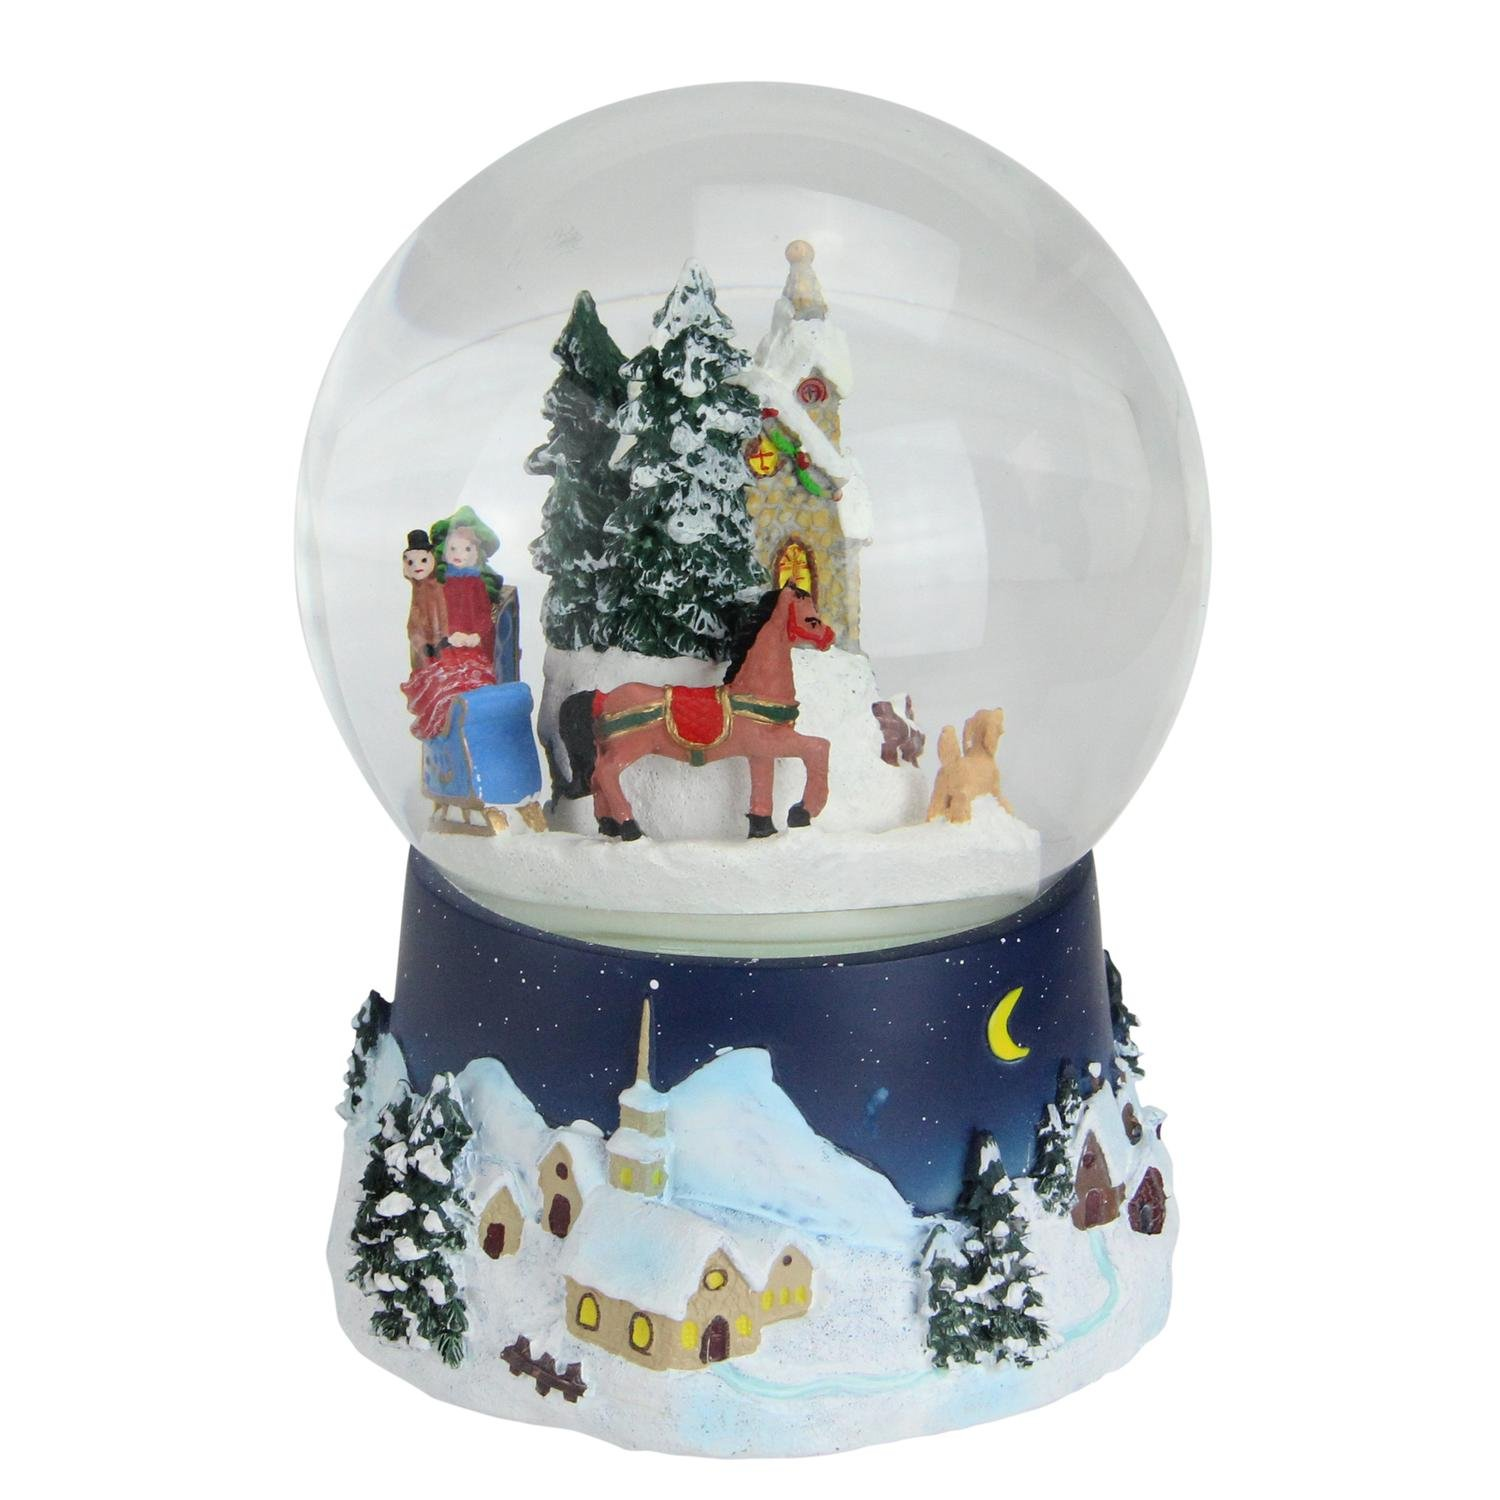 Northlight 6.5'' Musical and Animated Christmas Villiage Winter Scene Rotating Water Globe Dome